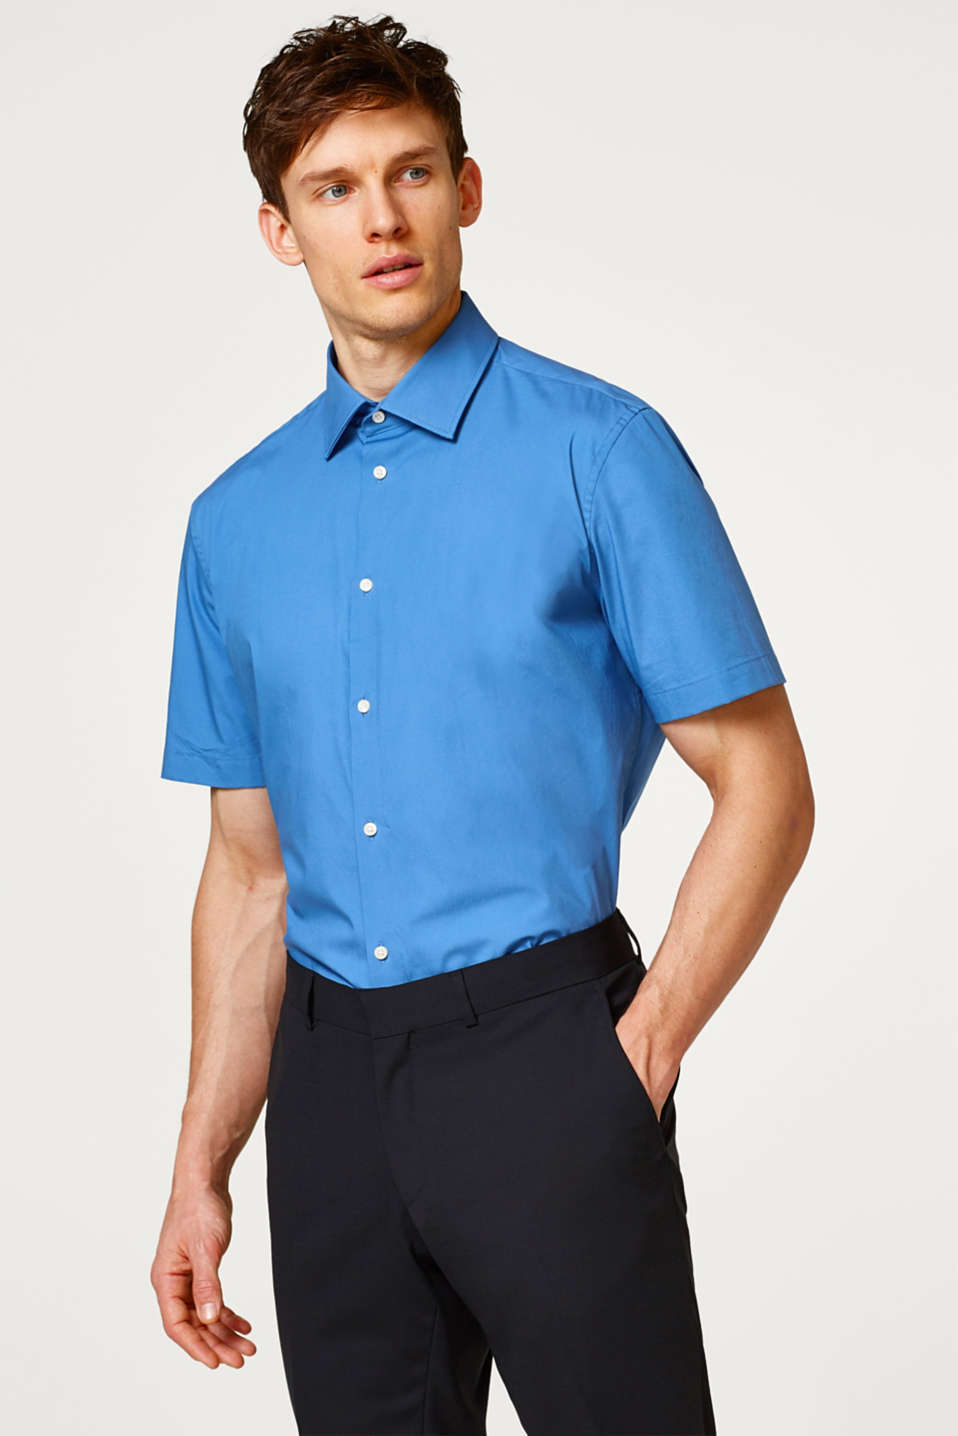 Esprit - Easy-iron short sleeve shirt with a Kent collar